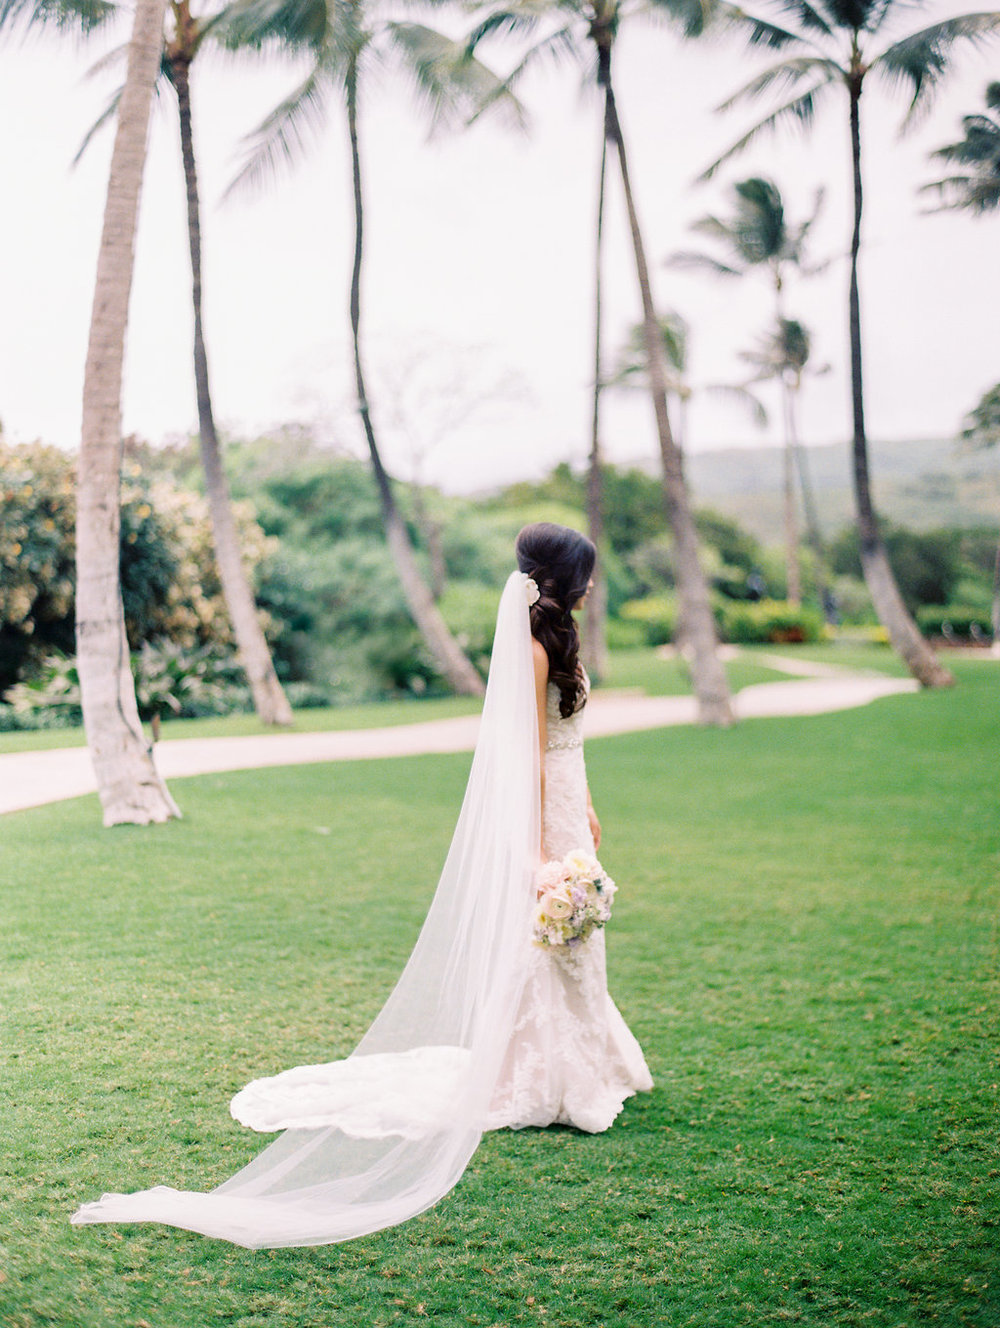 bridal-four-seasons-oahu-wedding-1.jpg